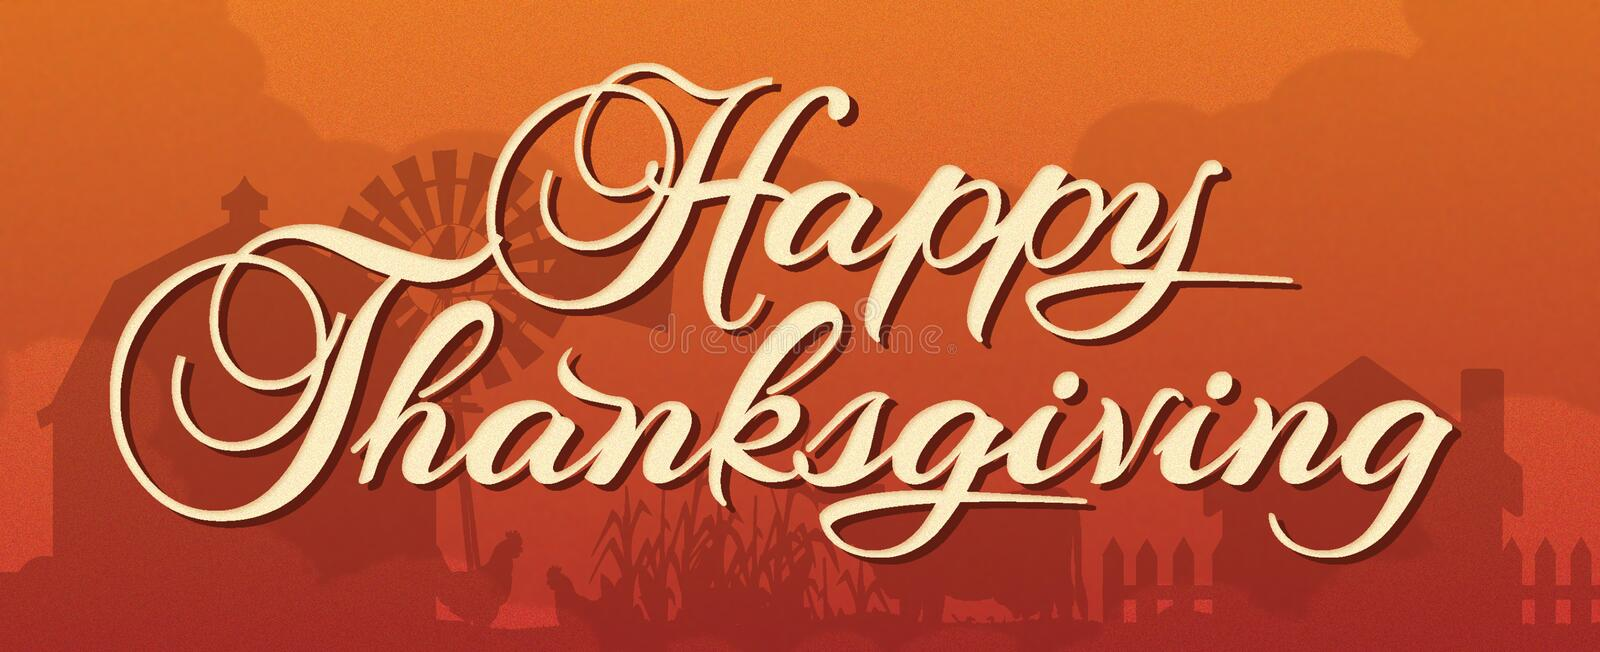 Happy Thanksgiving Banner with Farm Scene. In background autumn colors orange brown pumpkin calligraphy cursive lettering royalty free illustration